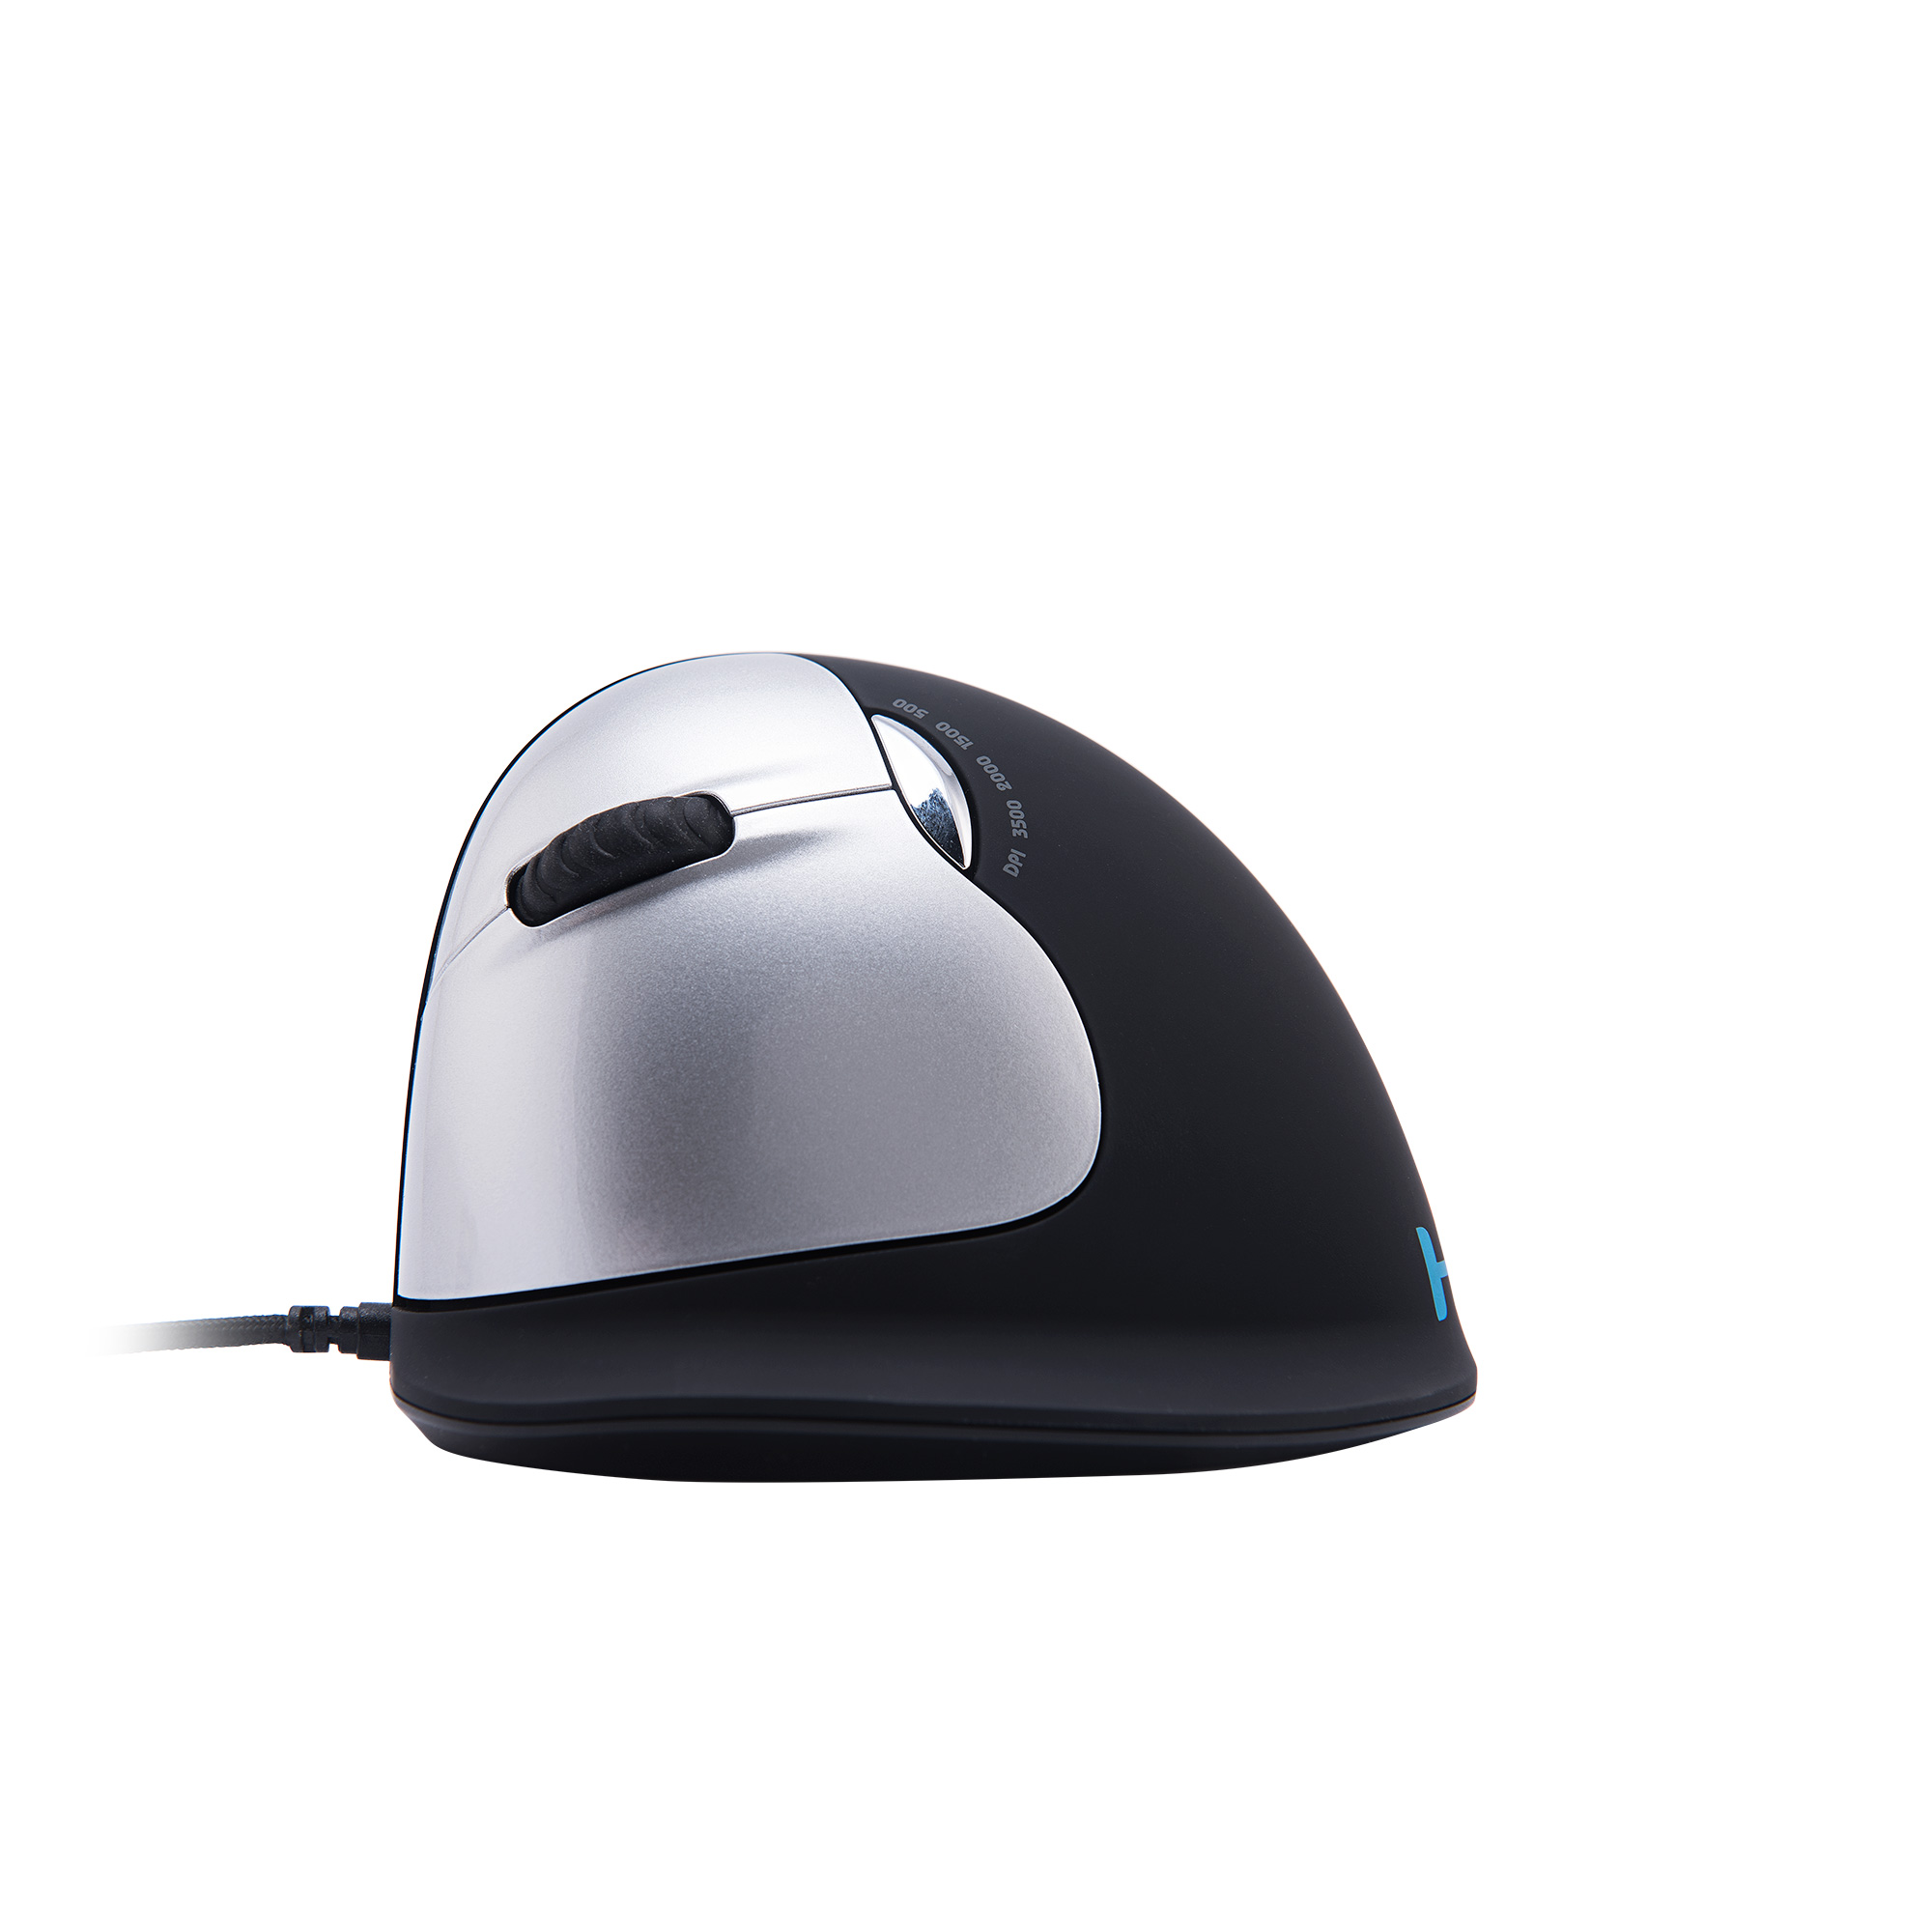 R-Go HE Mouse, Ergonomic mouse, Large (Hand Size above 185mm), Left Handed, wired - 2